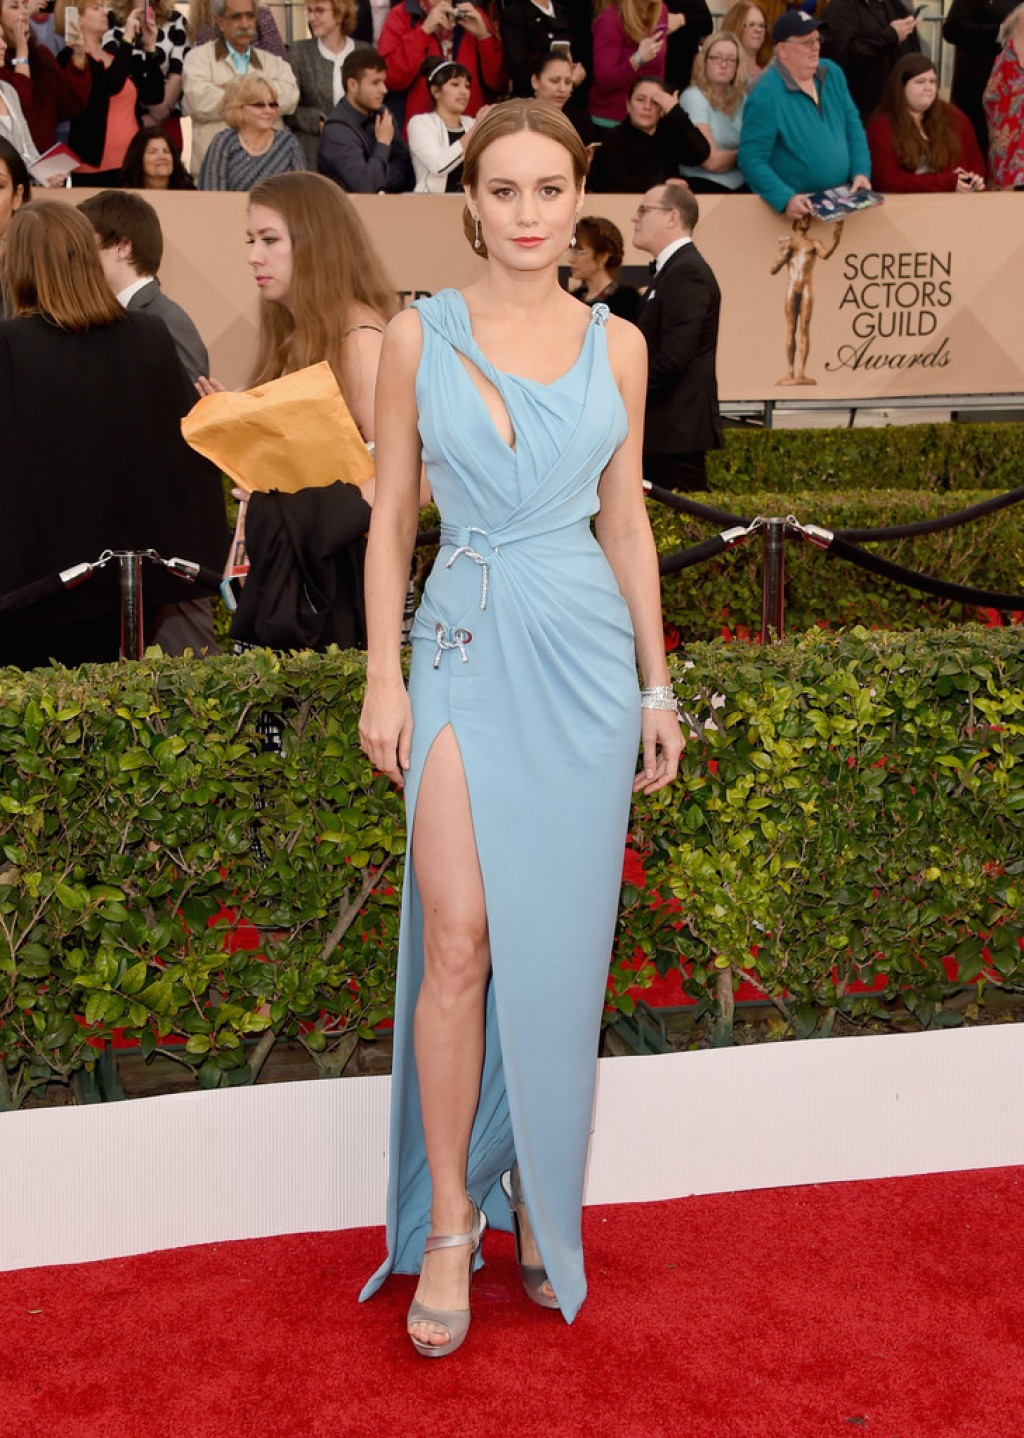 Screen-Actors-Guild-Awards-Brie-Larson-Dress-1024x1438